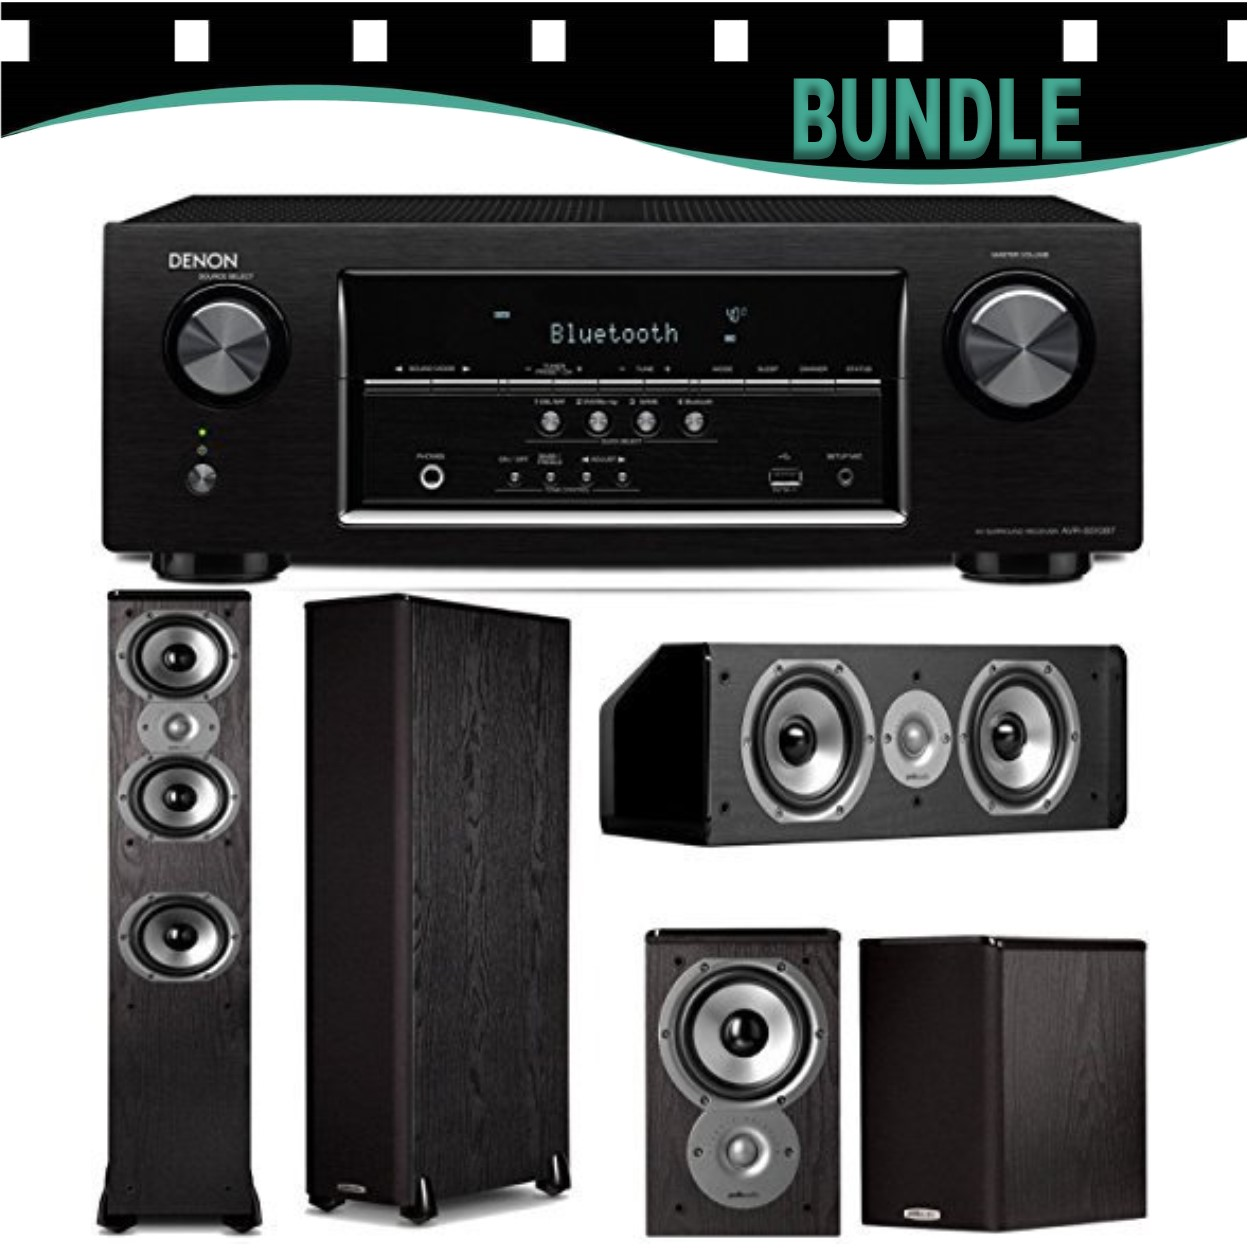 Denon AVR-S510BT 5.2-Channel Receiver with Polk TSi Bundle (TSi400, TSi100, CS10) Speakers